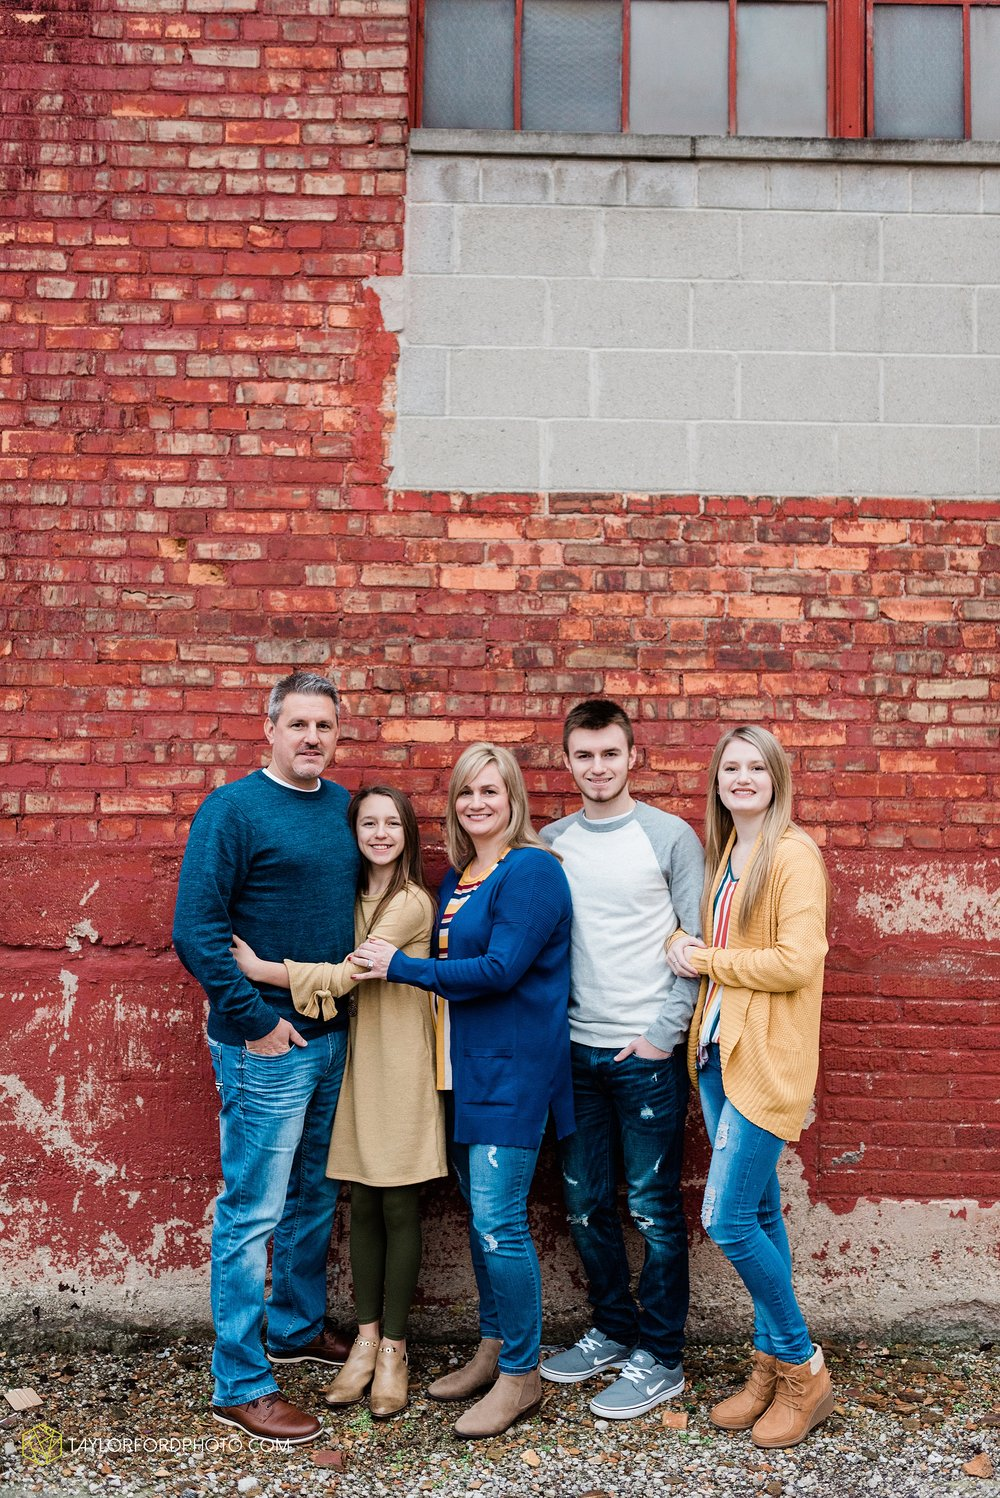 thompson-extended-family-van-wert-ohio-downtown-family-photography-taylor-ford-hirschy-photographer_2059.jpg